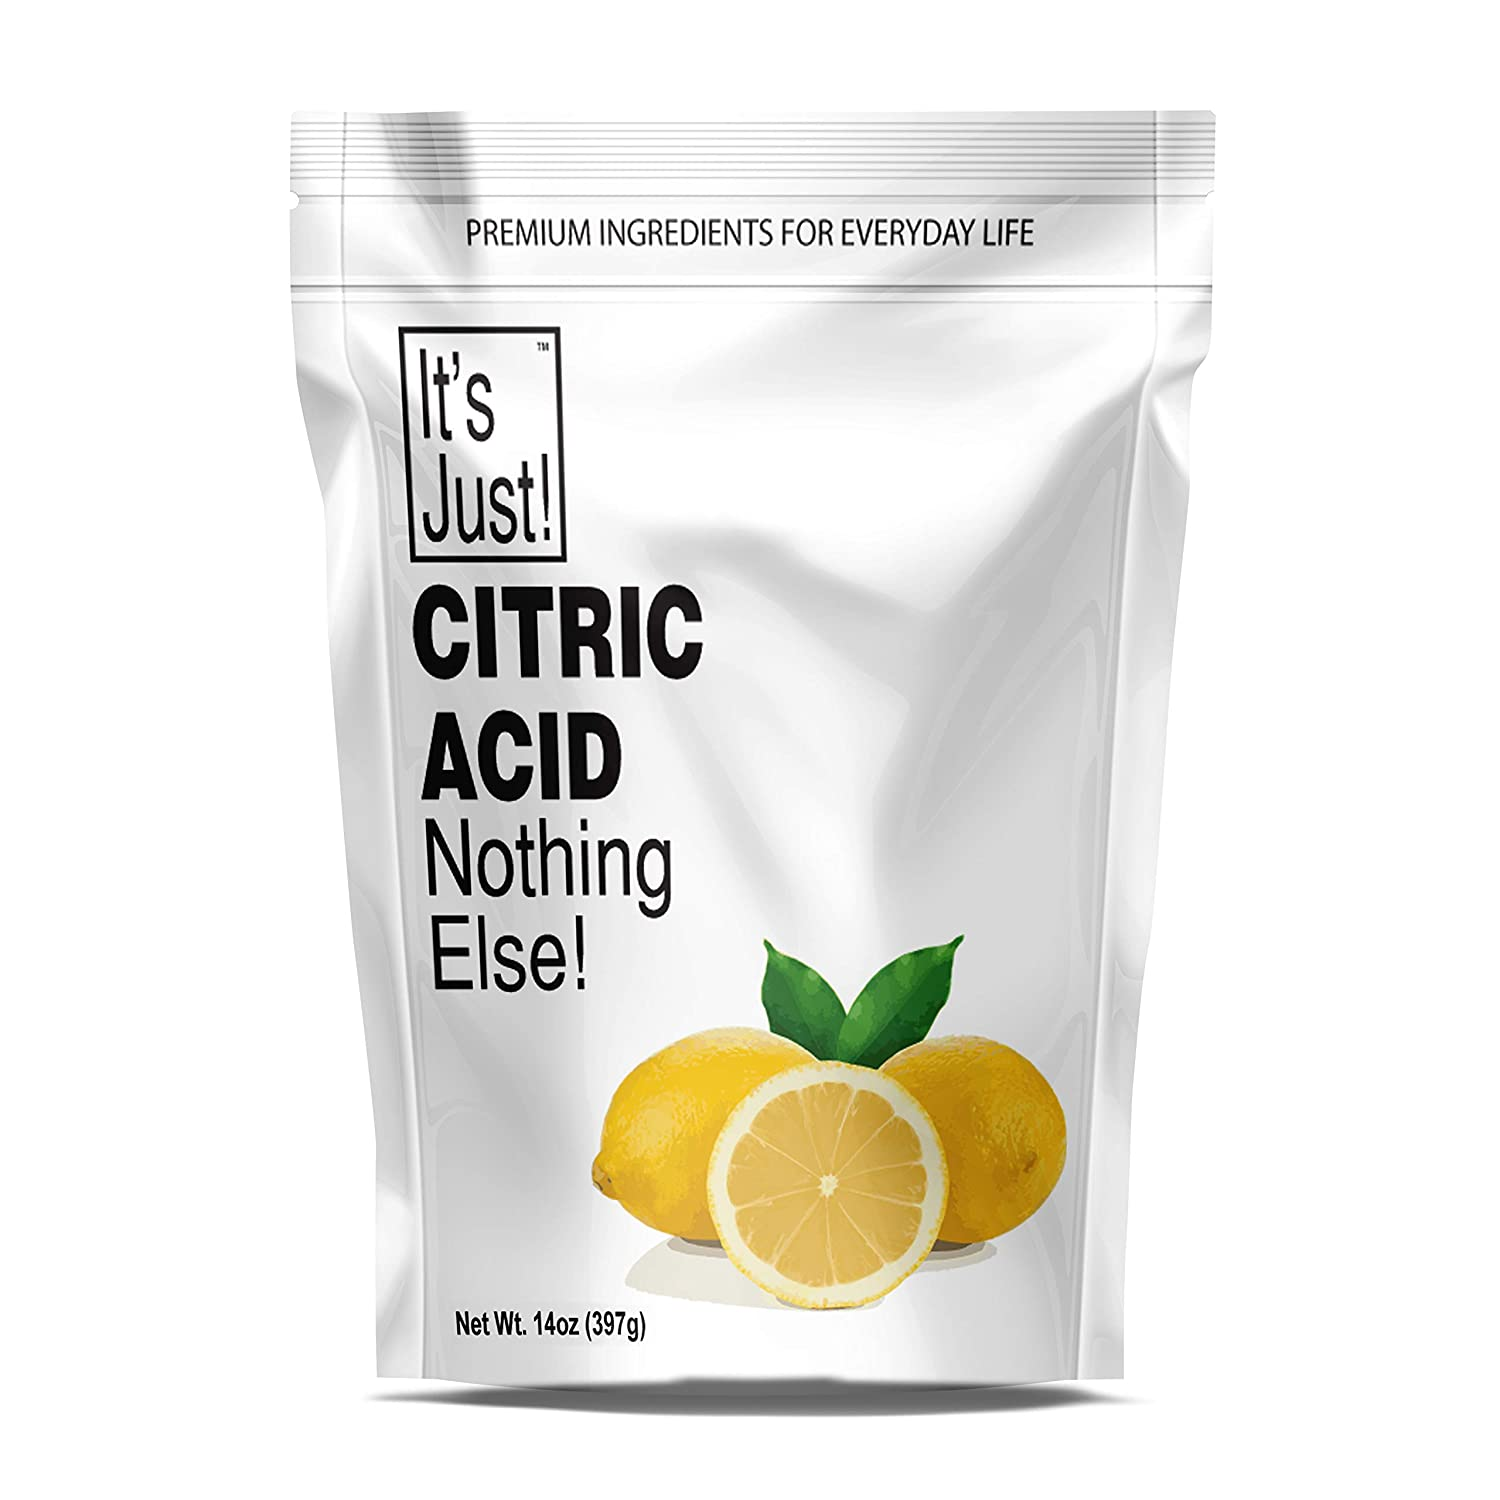 It's Just - Citric Acid (Food Grade) Non-GMO, Make Your Own, Bath Bombs, Sour Drinks, Household Cleaning, 14oz